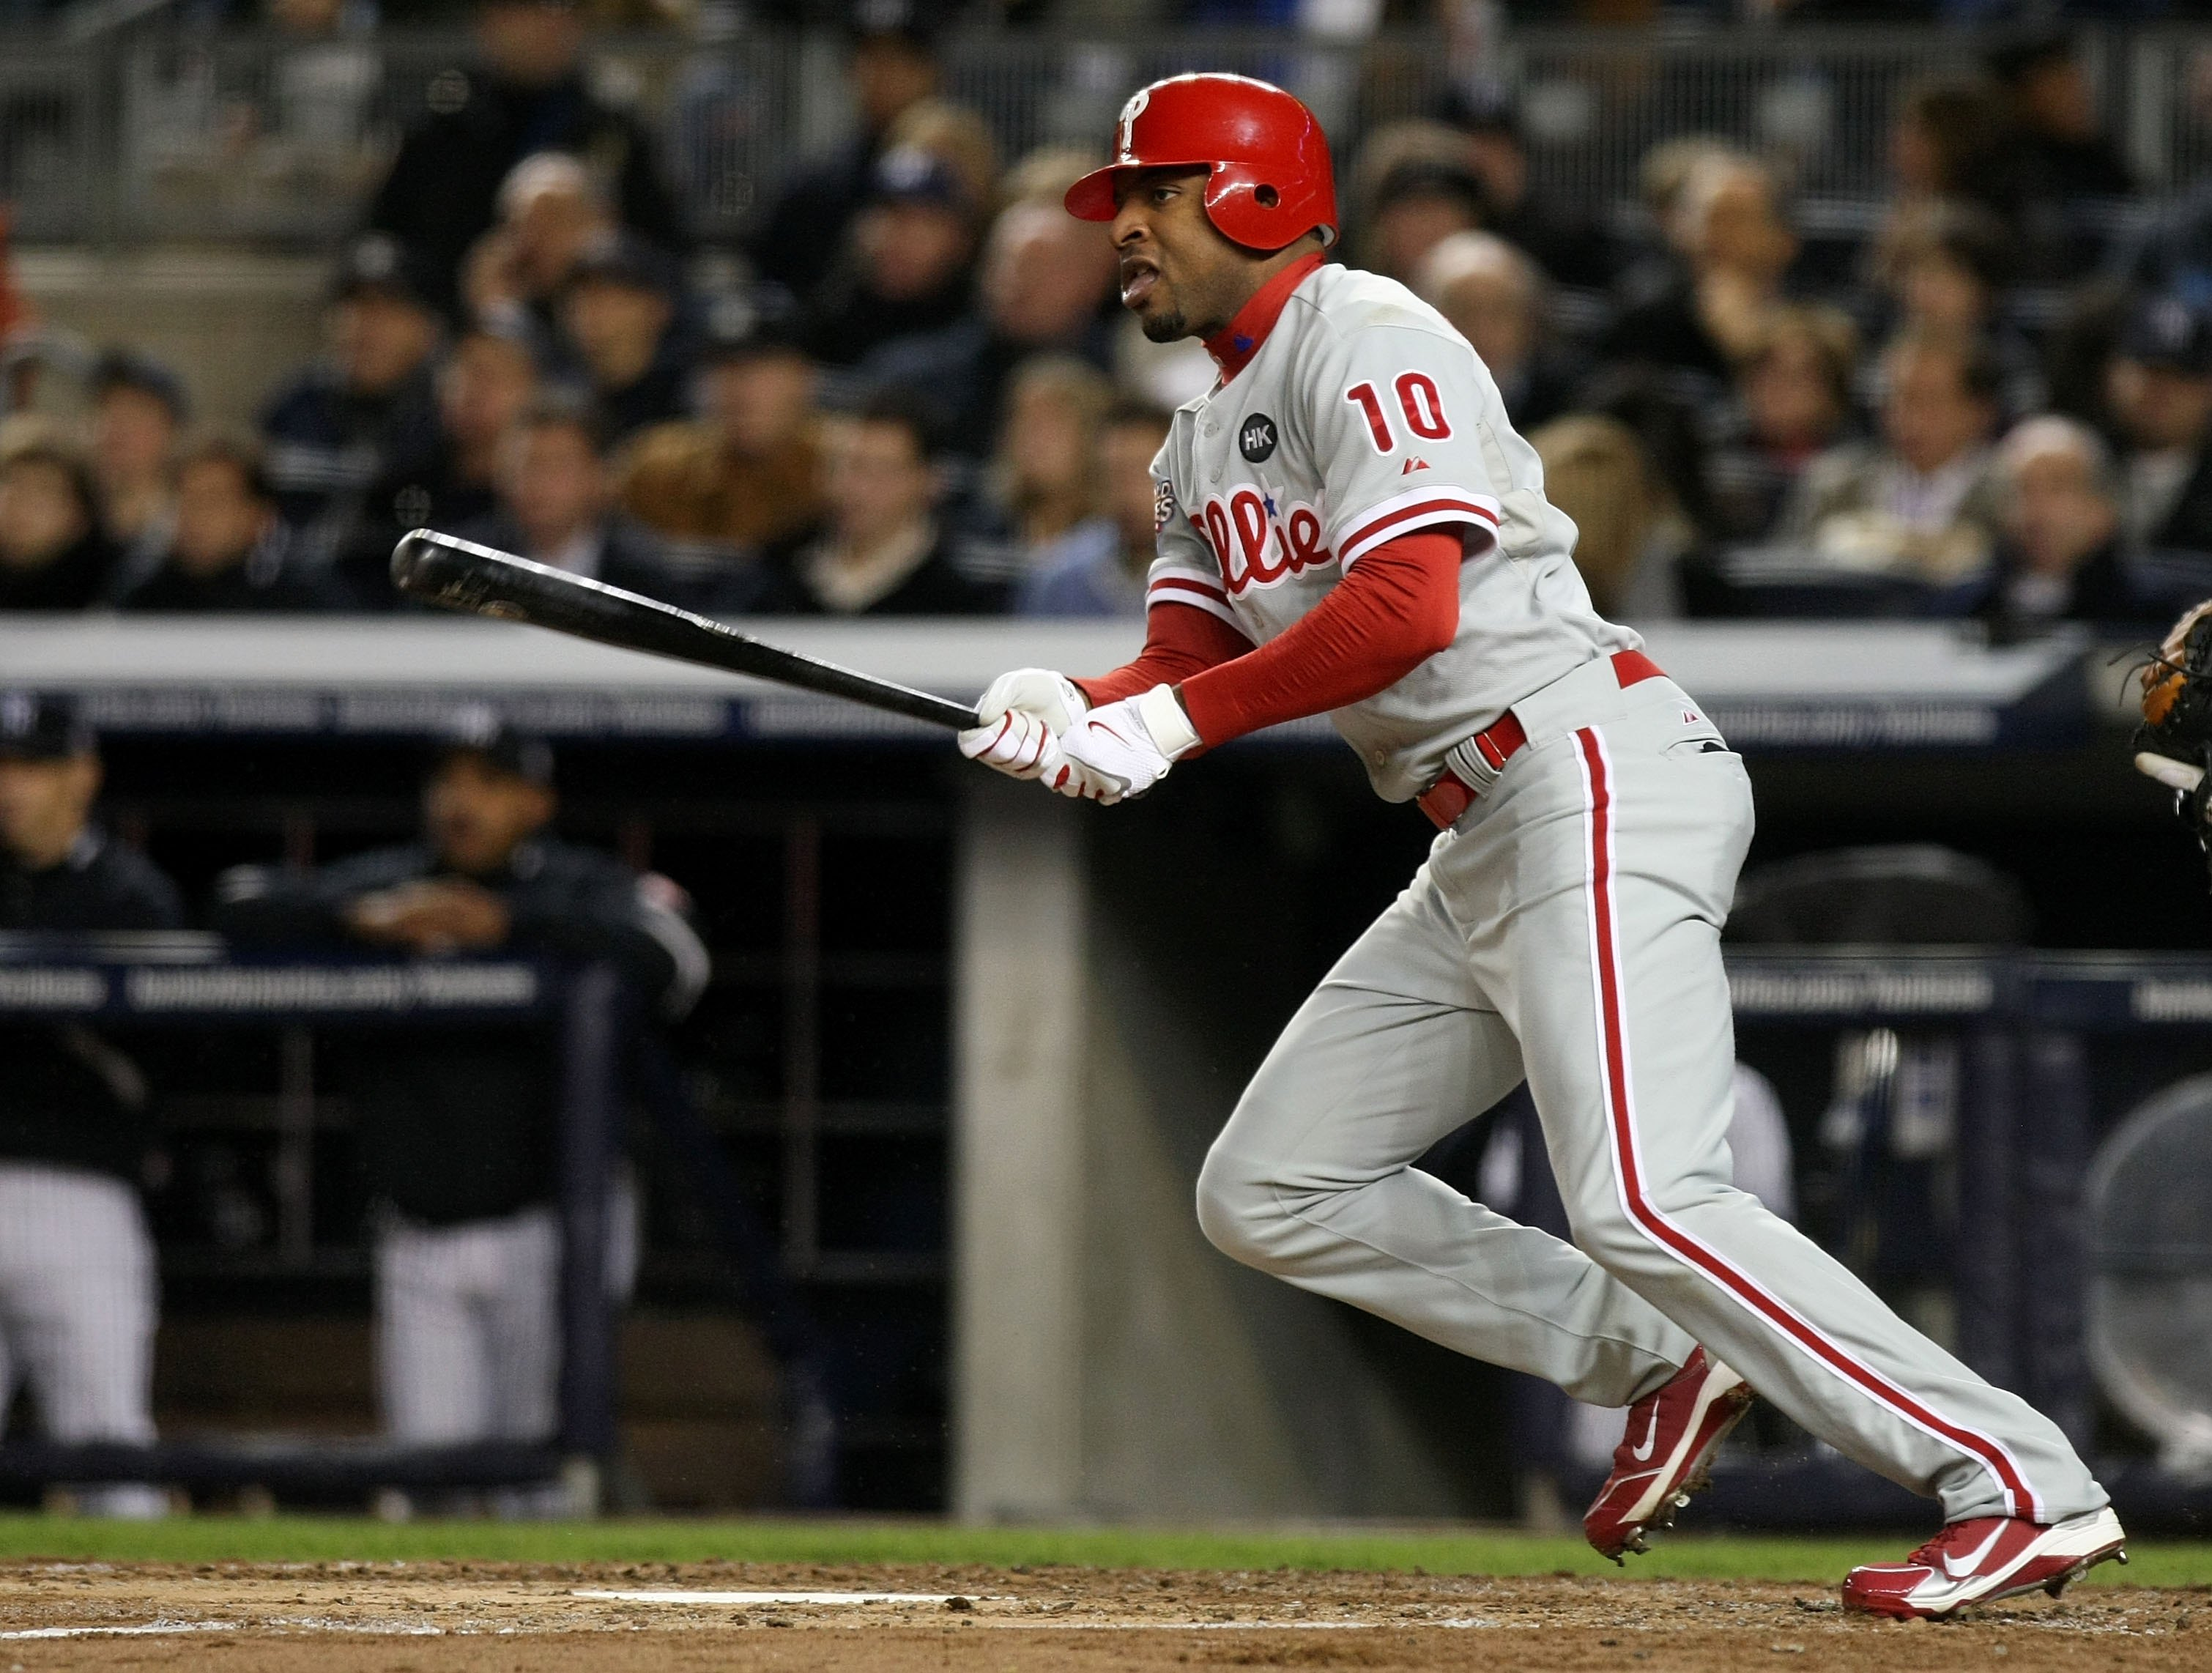 NEW YORK - NOVEMBER 04:  Ben Francisco #10 of the Philadelphia Phillies bats against the New York Yankees in Game Six of the 2009 MLB World Series at Yankee Stadium on November 4, 2009 in the Bronx borough of New York City.  (Photo by Nick Laham/Getty Ima